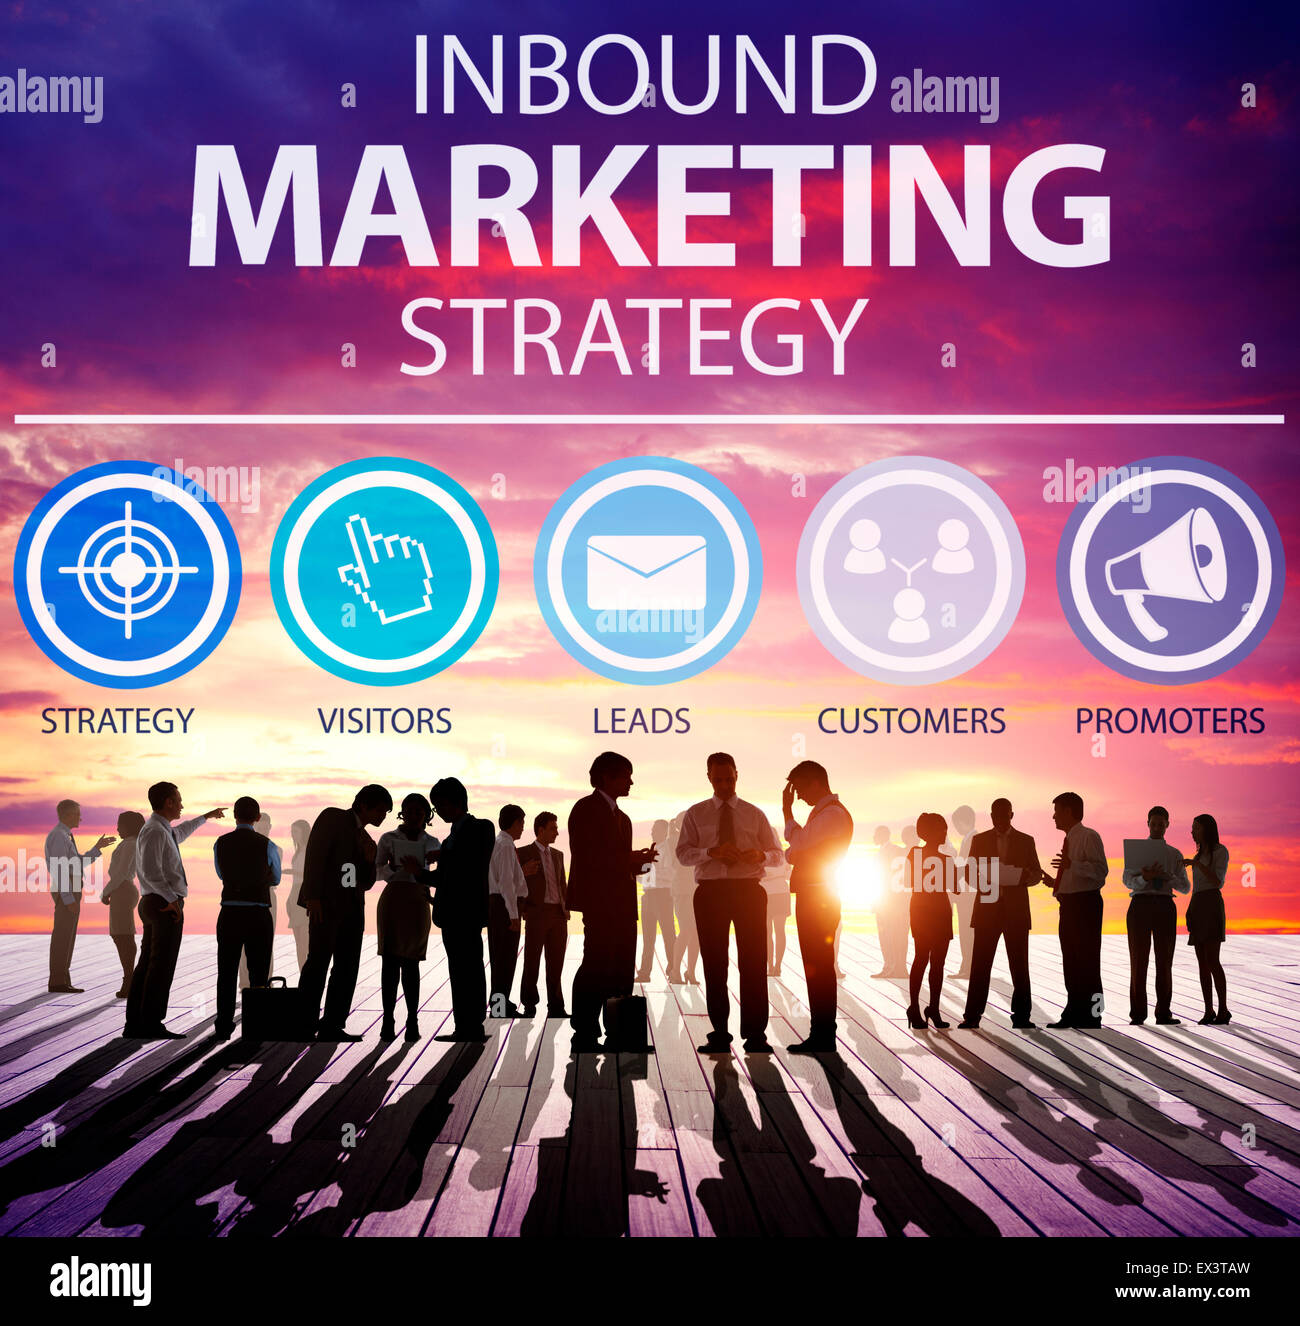 Inbound Marketing Strategy Commerce Solution Concept - Stock Image